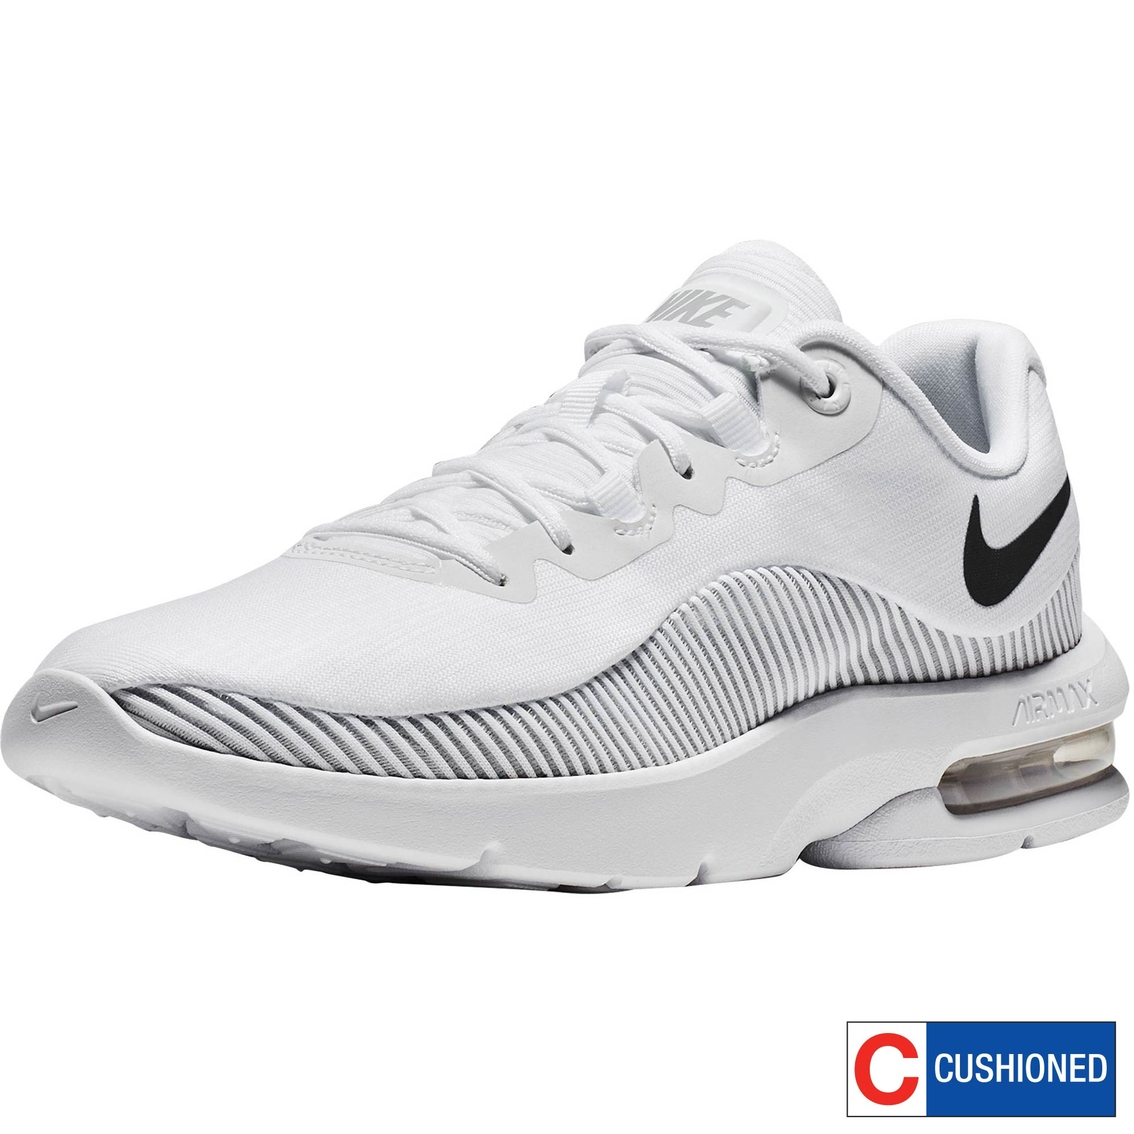 e8d1eb18a5 Nike Women's Air Max Advantage 2 Running Shoes | Running | Shoes ...